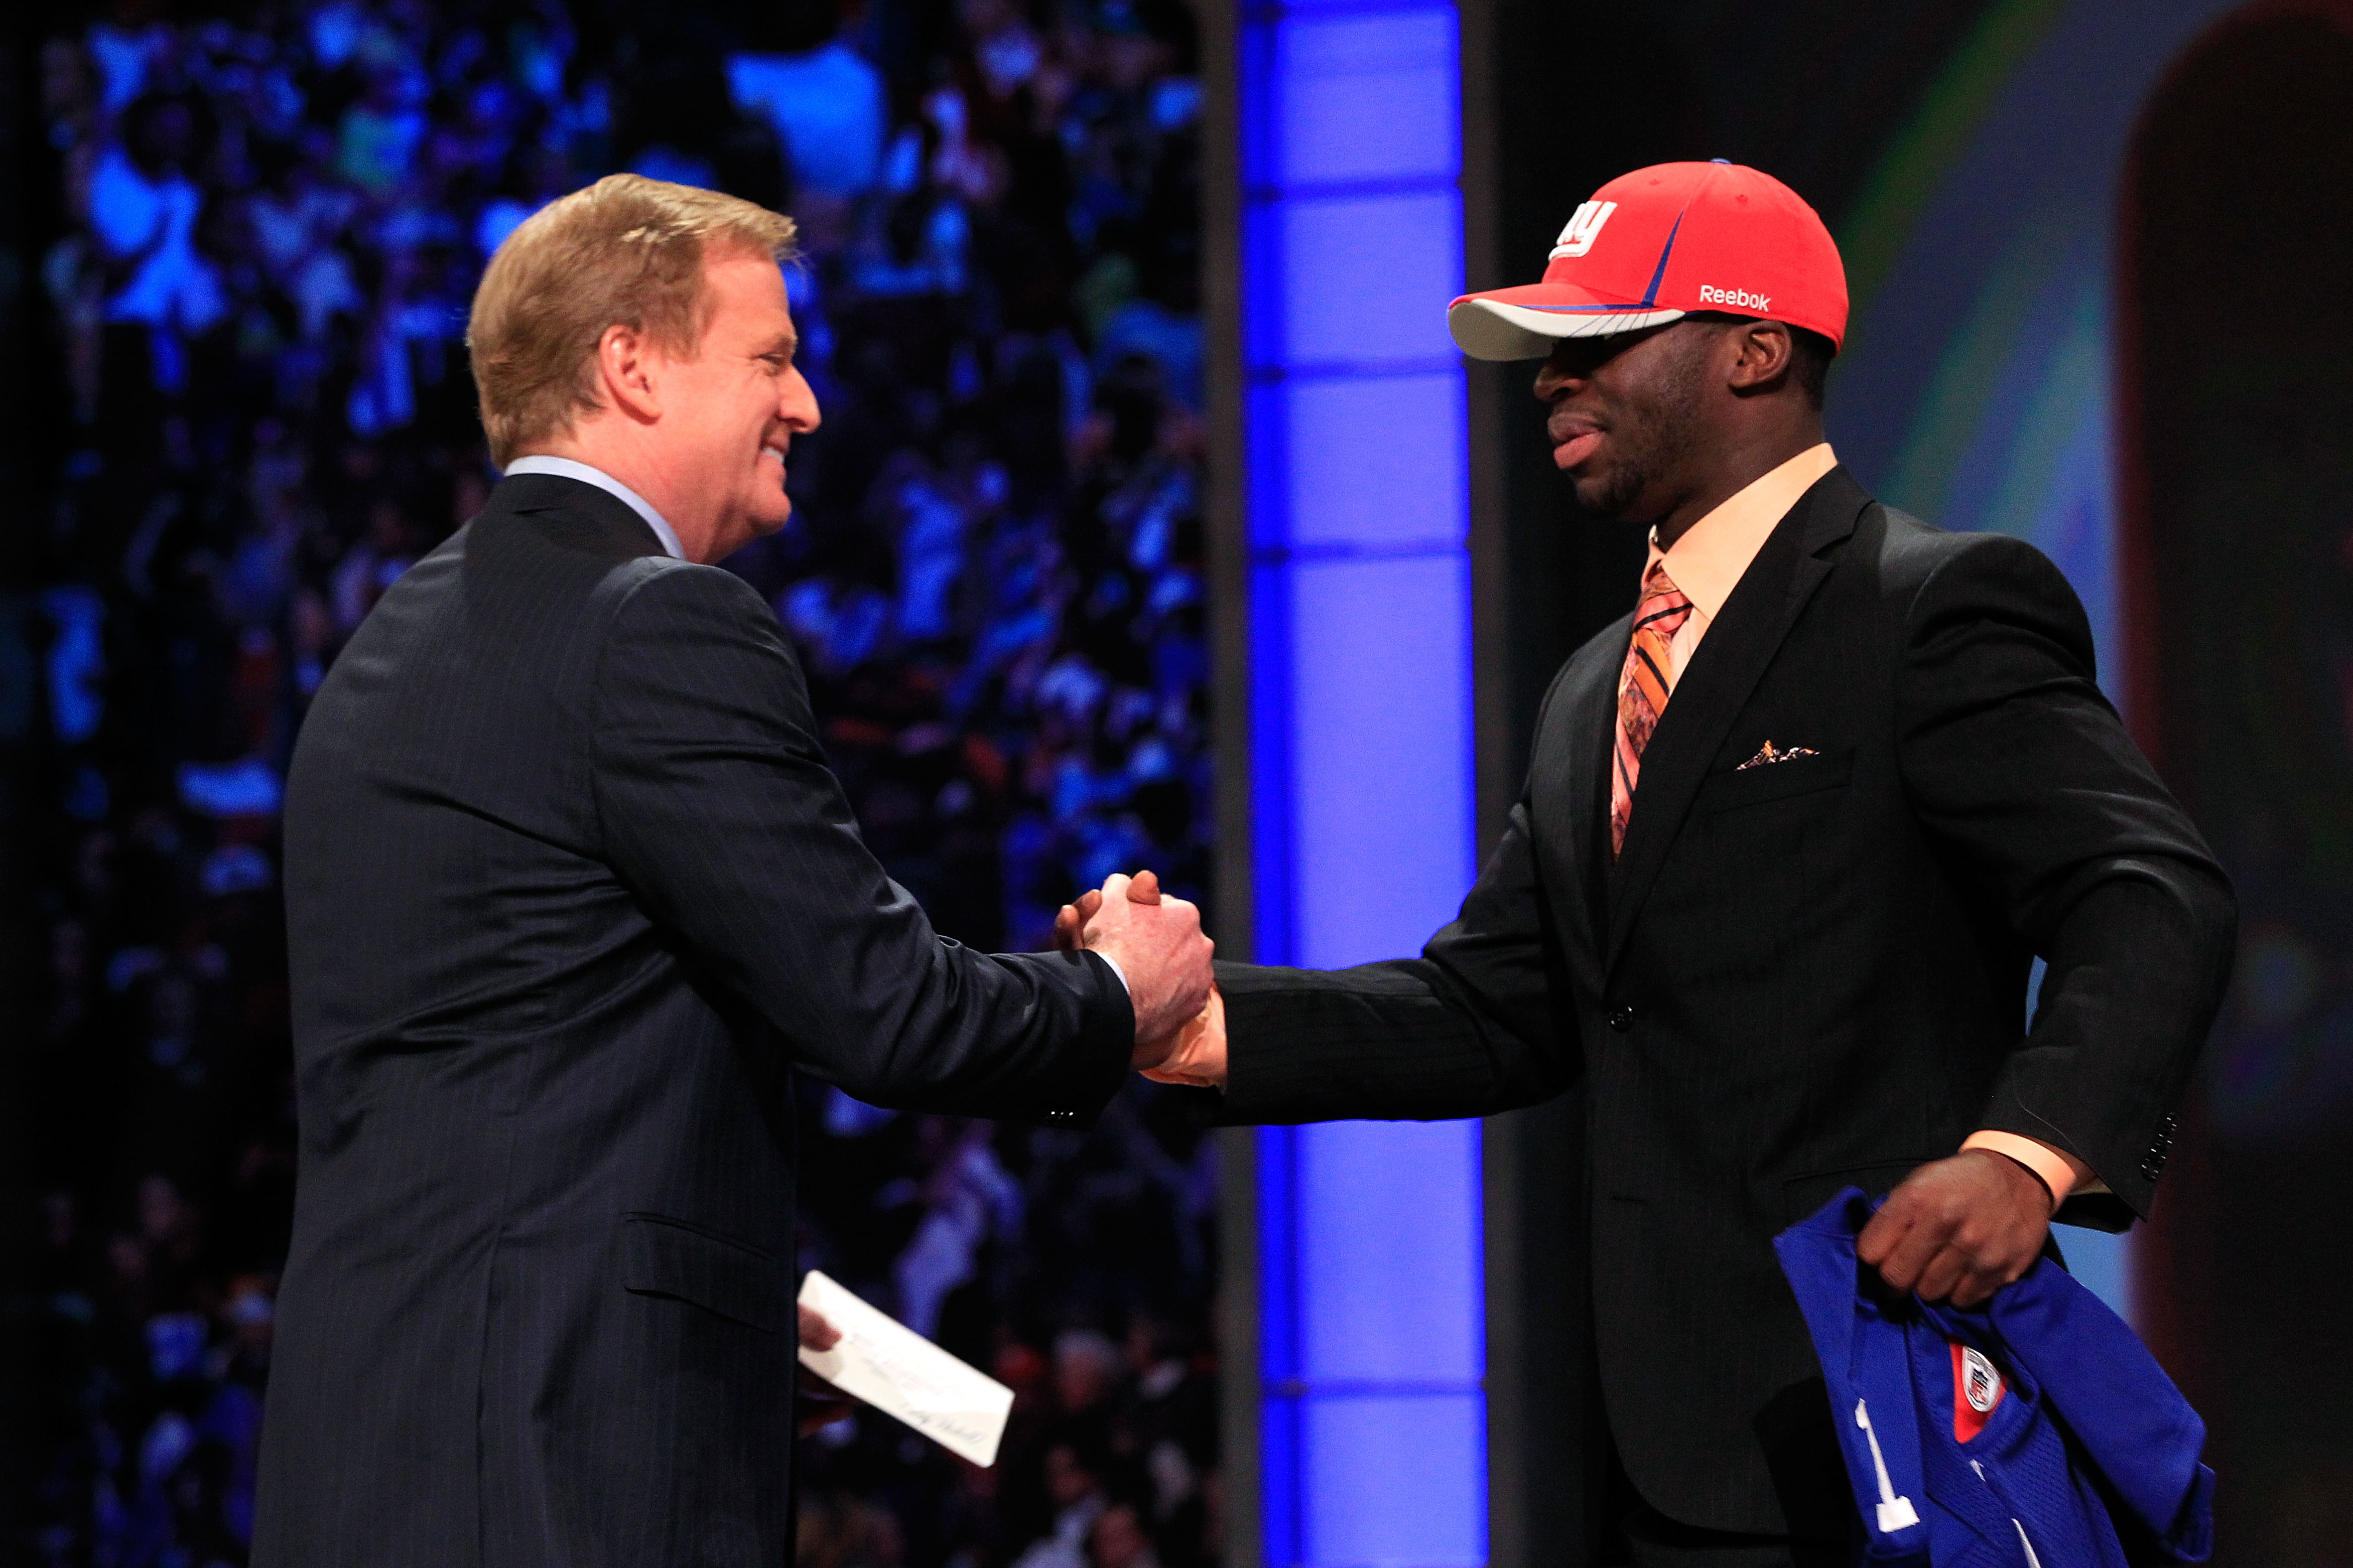 NEW YORK, NY - APRIL 28:  NFL Commissioner Roger Goodell (L) greets Prince Amukamara, #19 overall pick by the New York Giants, on stage during the 2011 NFL Draft at Radio City Music Hall on April 28, 2011 in New York City.  (Photo by Chris Trotman/Getty I